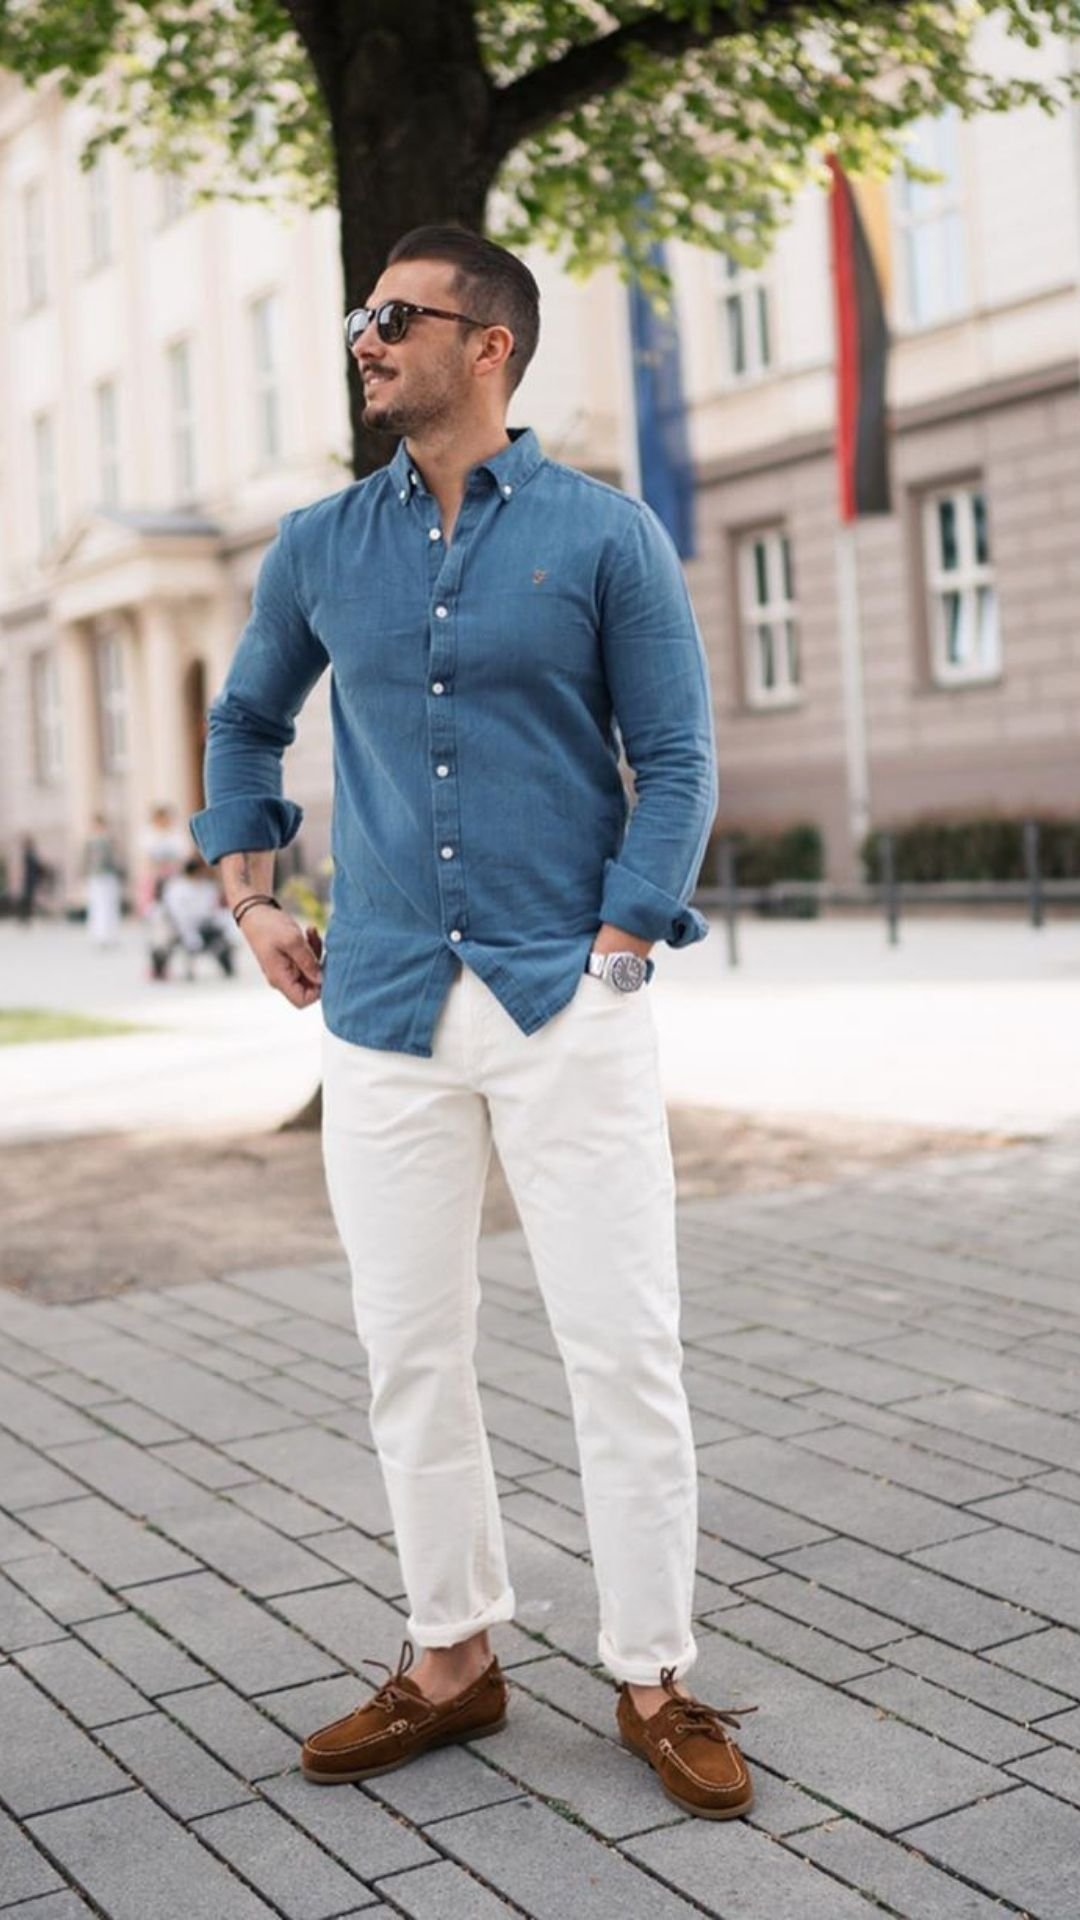 Chinos + Casual Shirt Outfits For Men #mensfashion